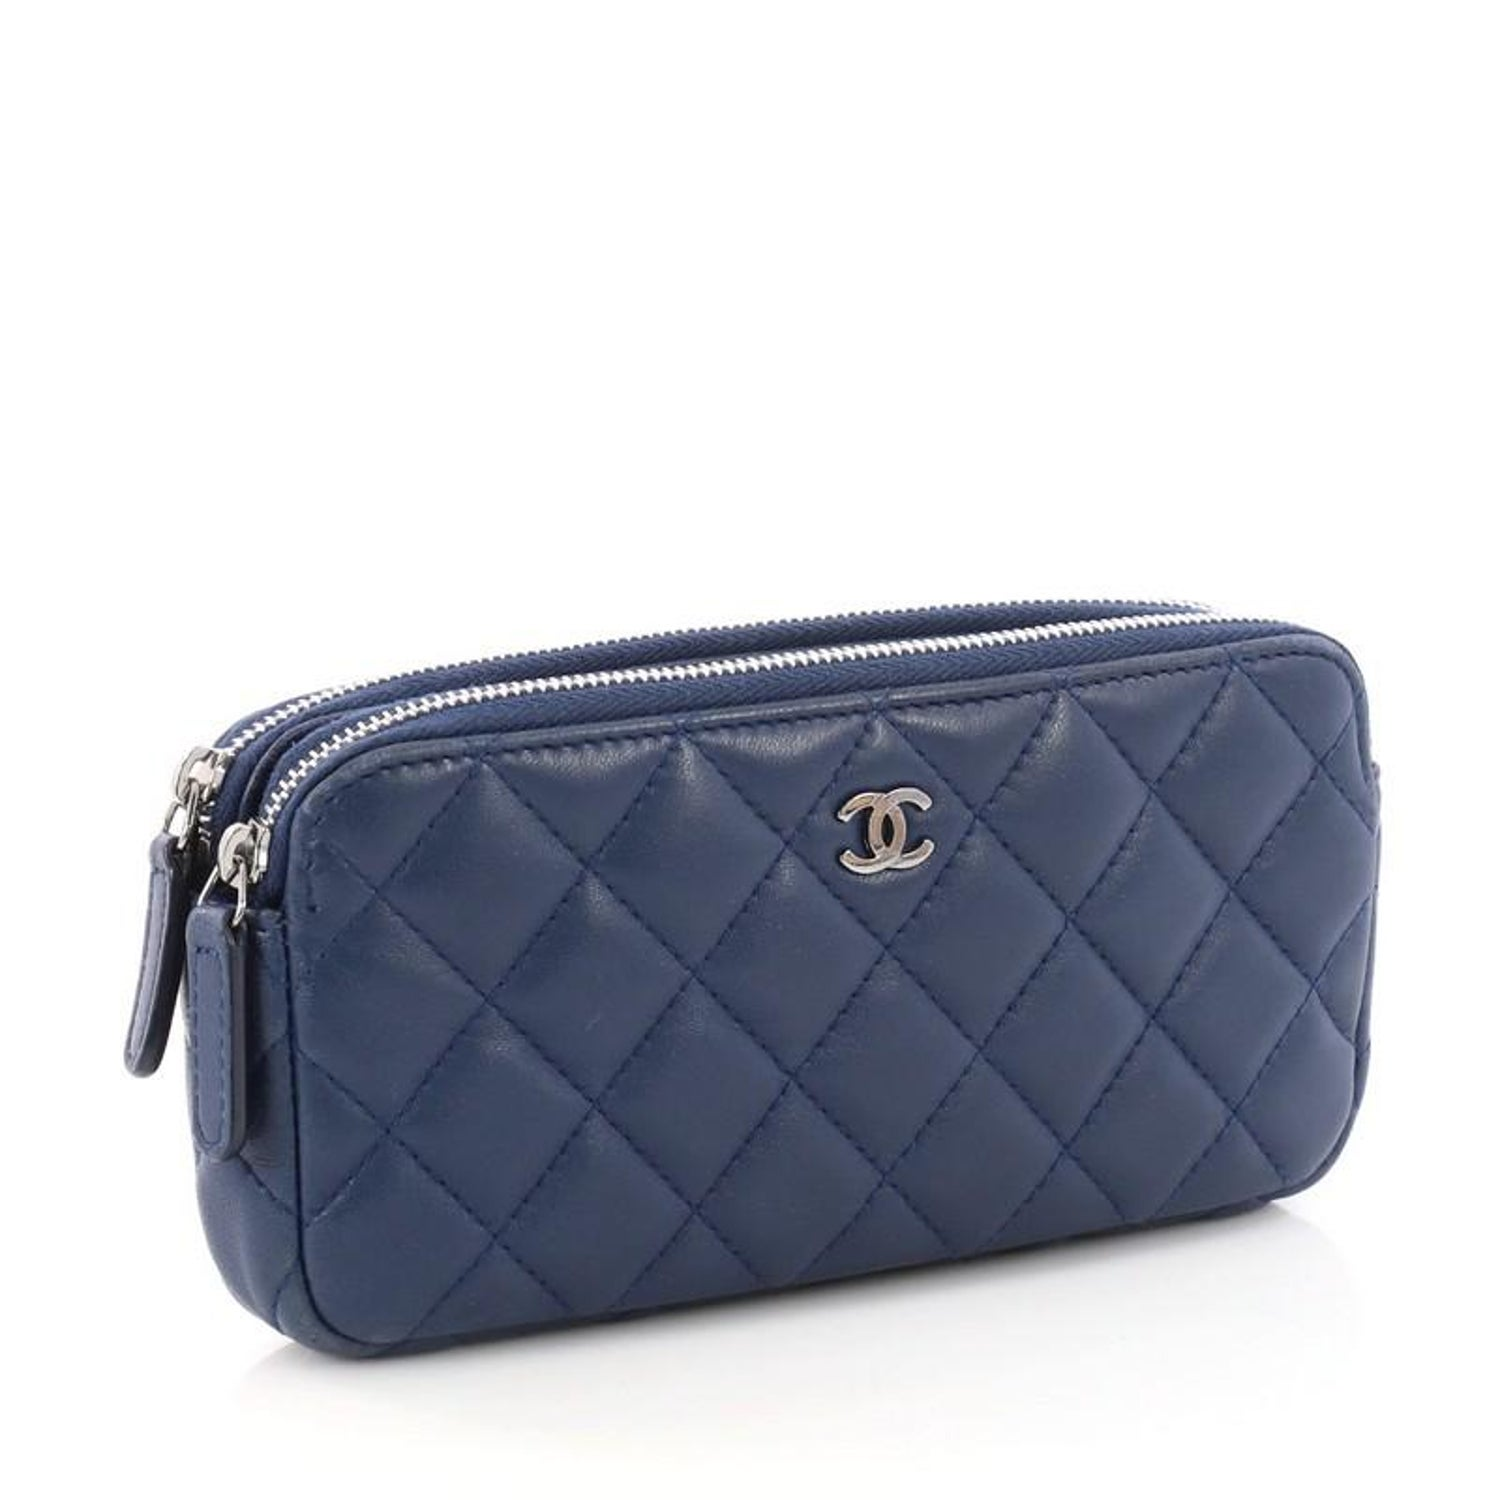 9dde50d8f52d Chanel Double Zip Clutch with Chain Quilted Lambskin at 1stdibs